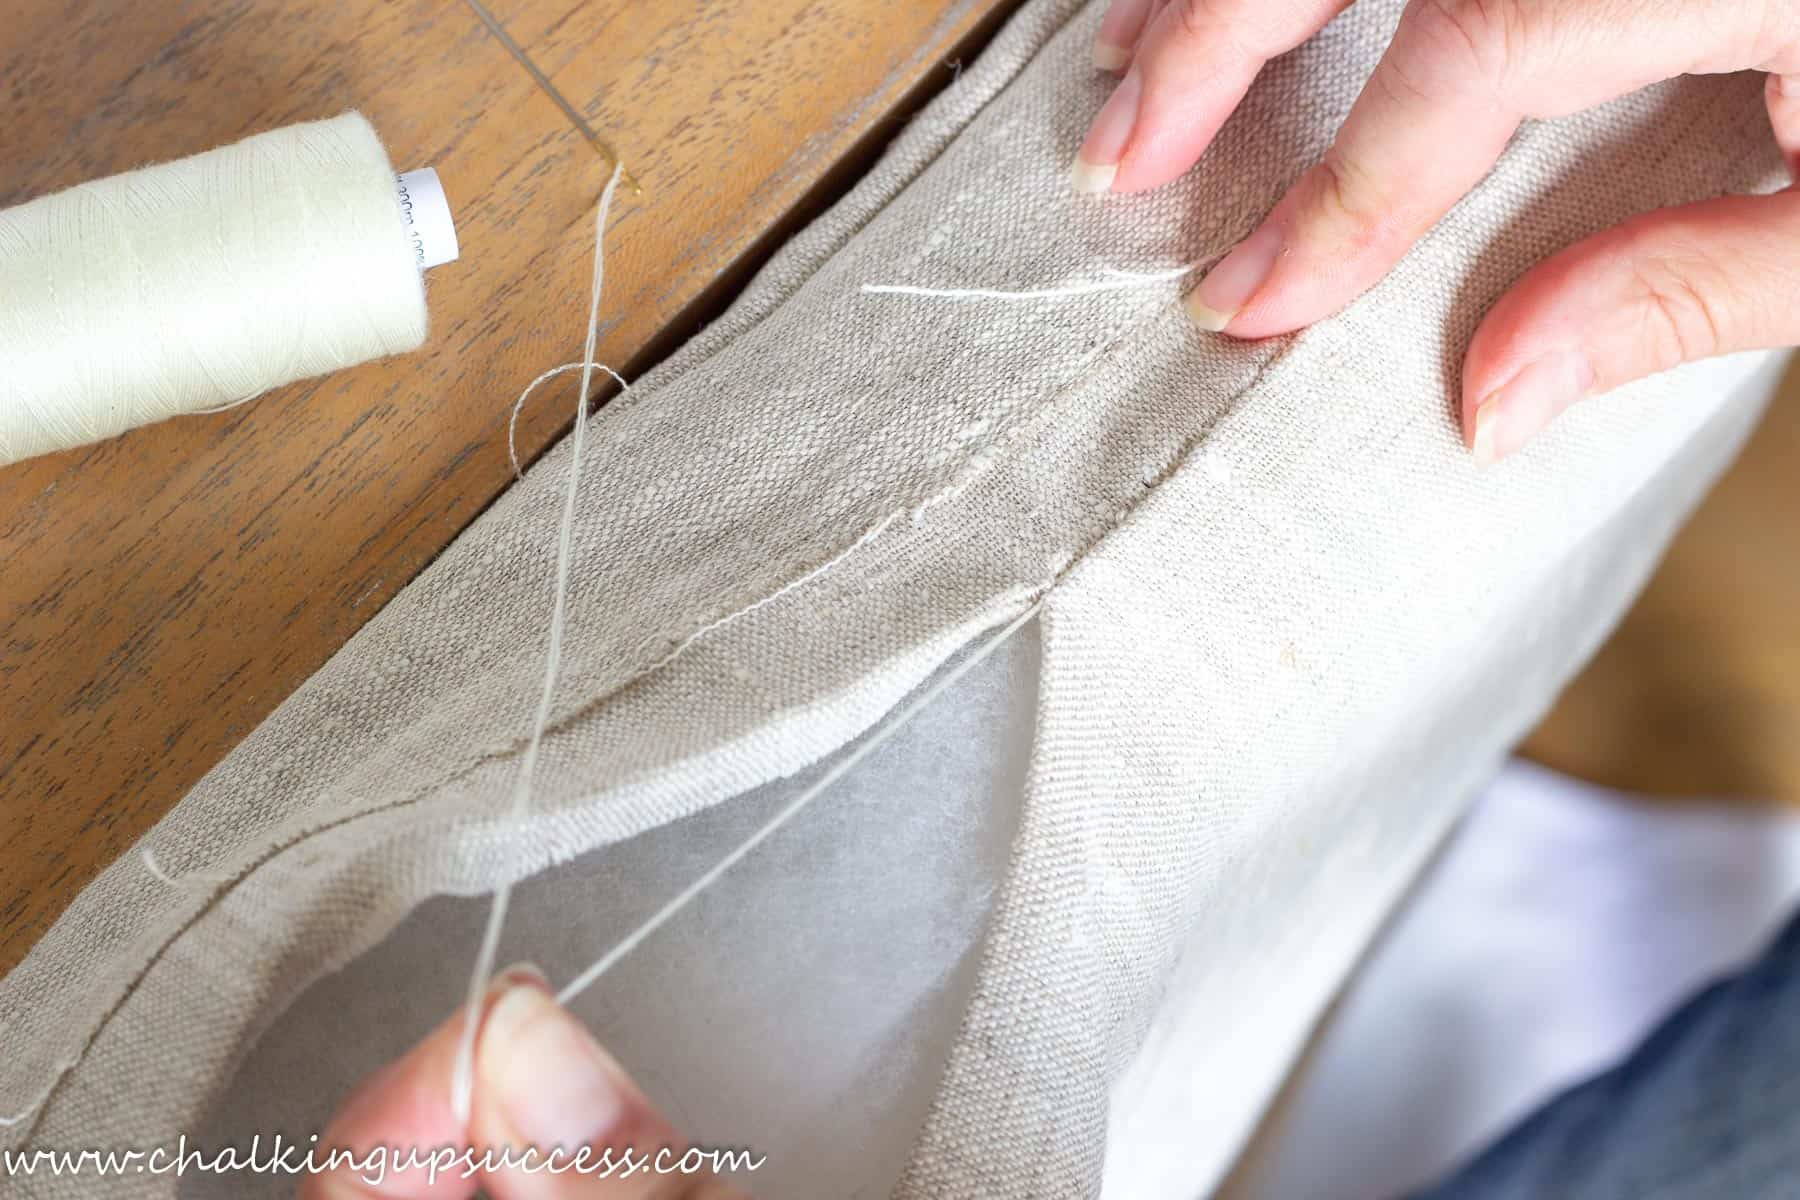 Hand sewing the cushion closed with a 'slip' stitch and pulling the thread tight.